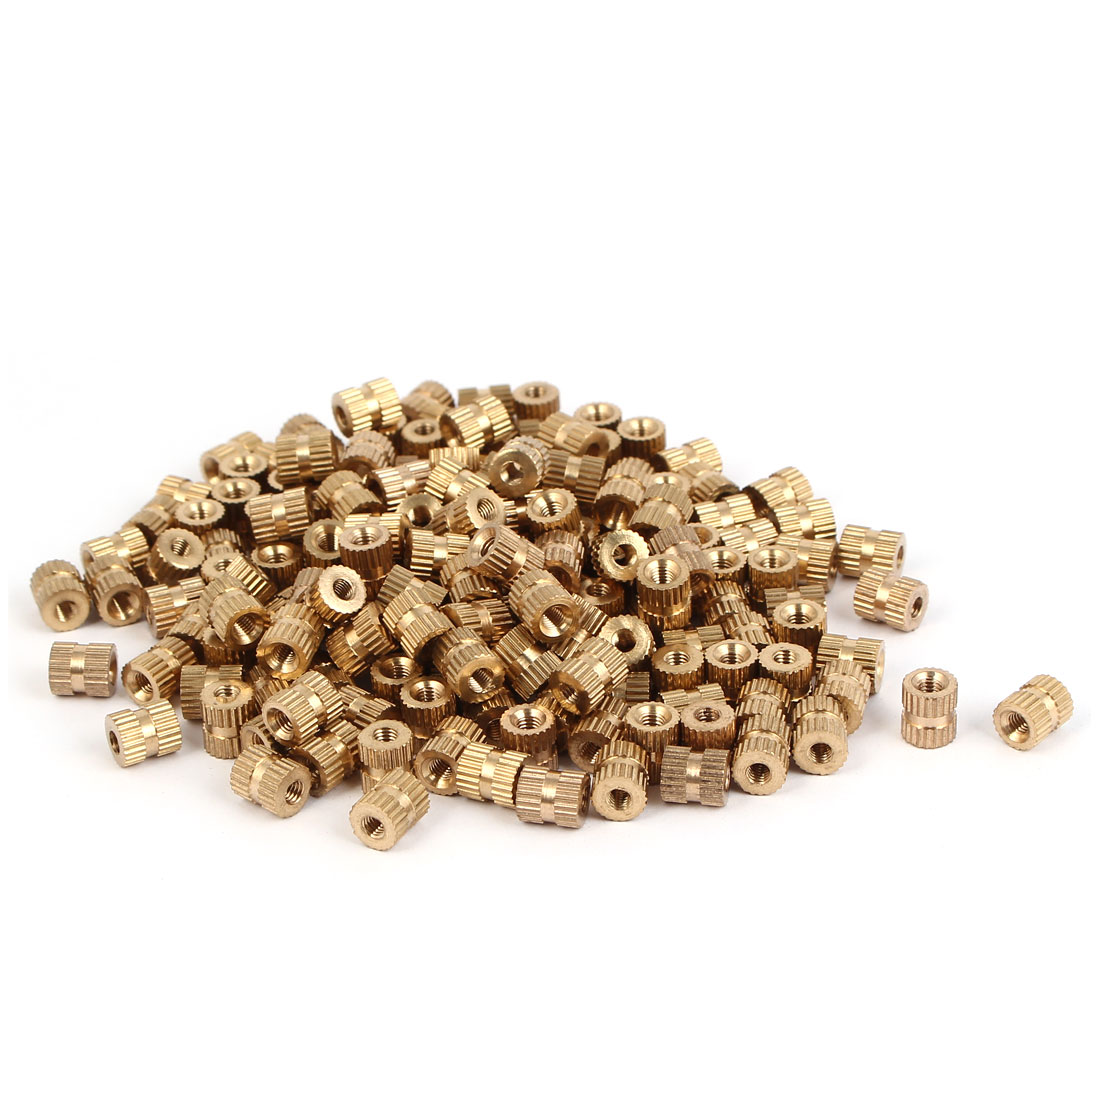 M3 x 7mm 0.5mm Pitch Brass Cylinder Knurled Threaded Insert Embedded Nuts 200PCS